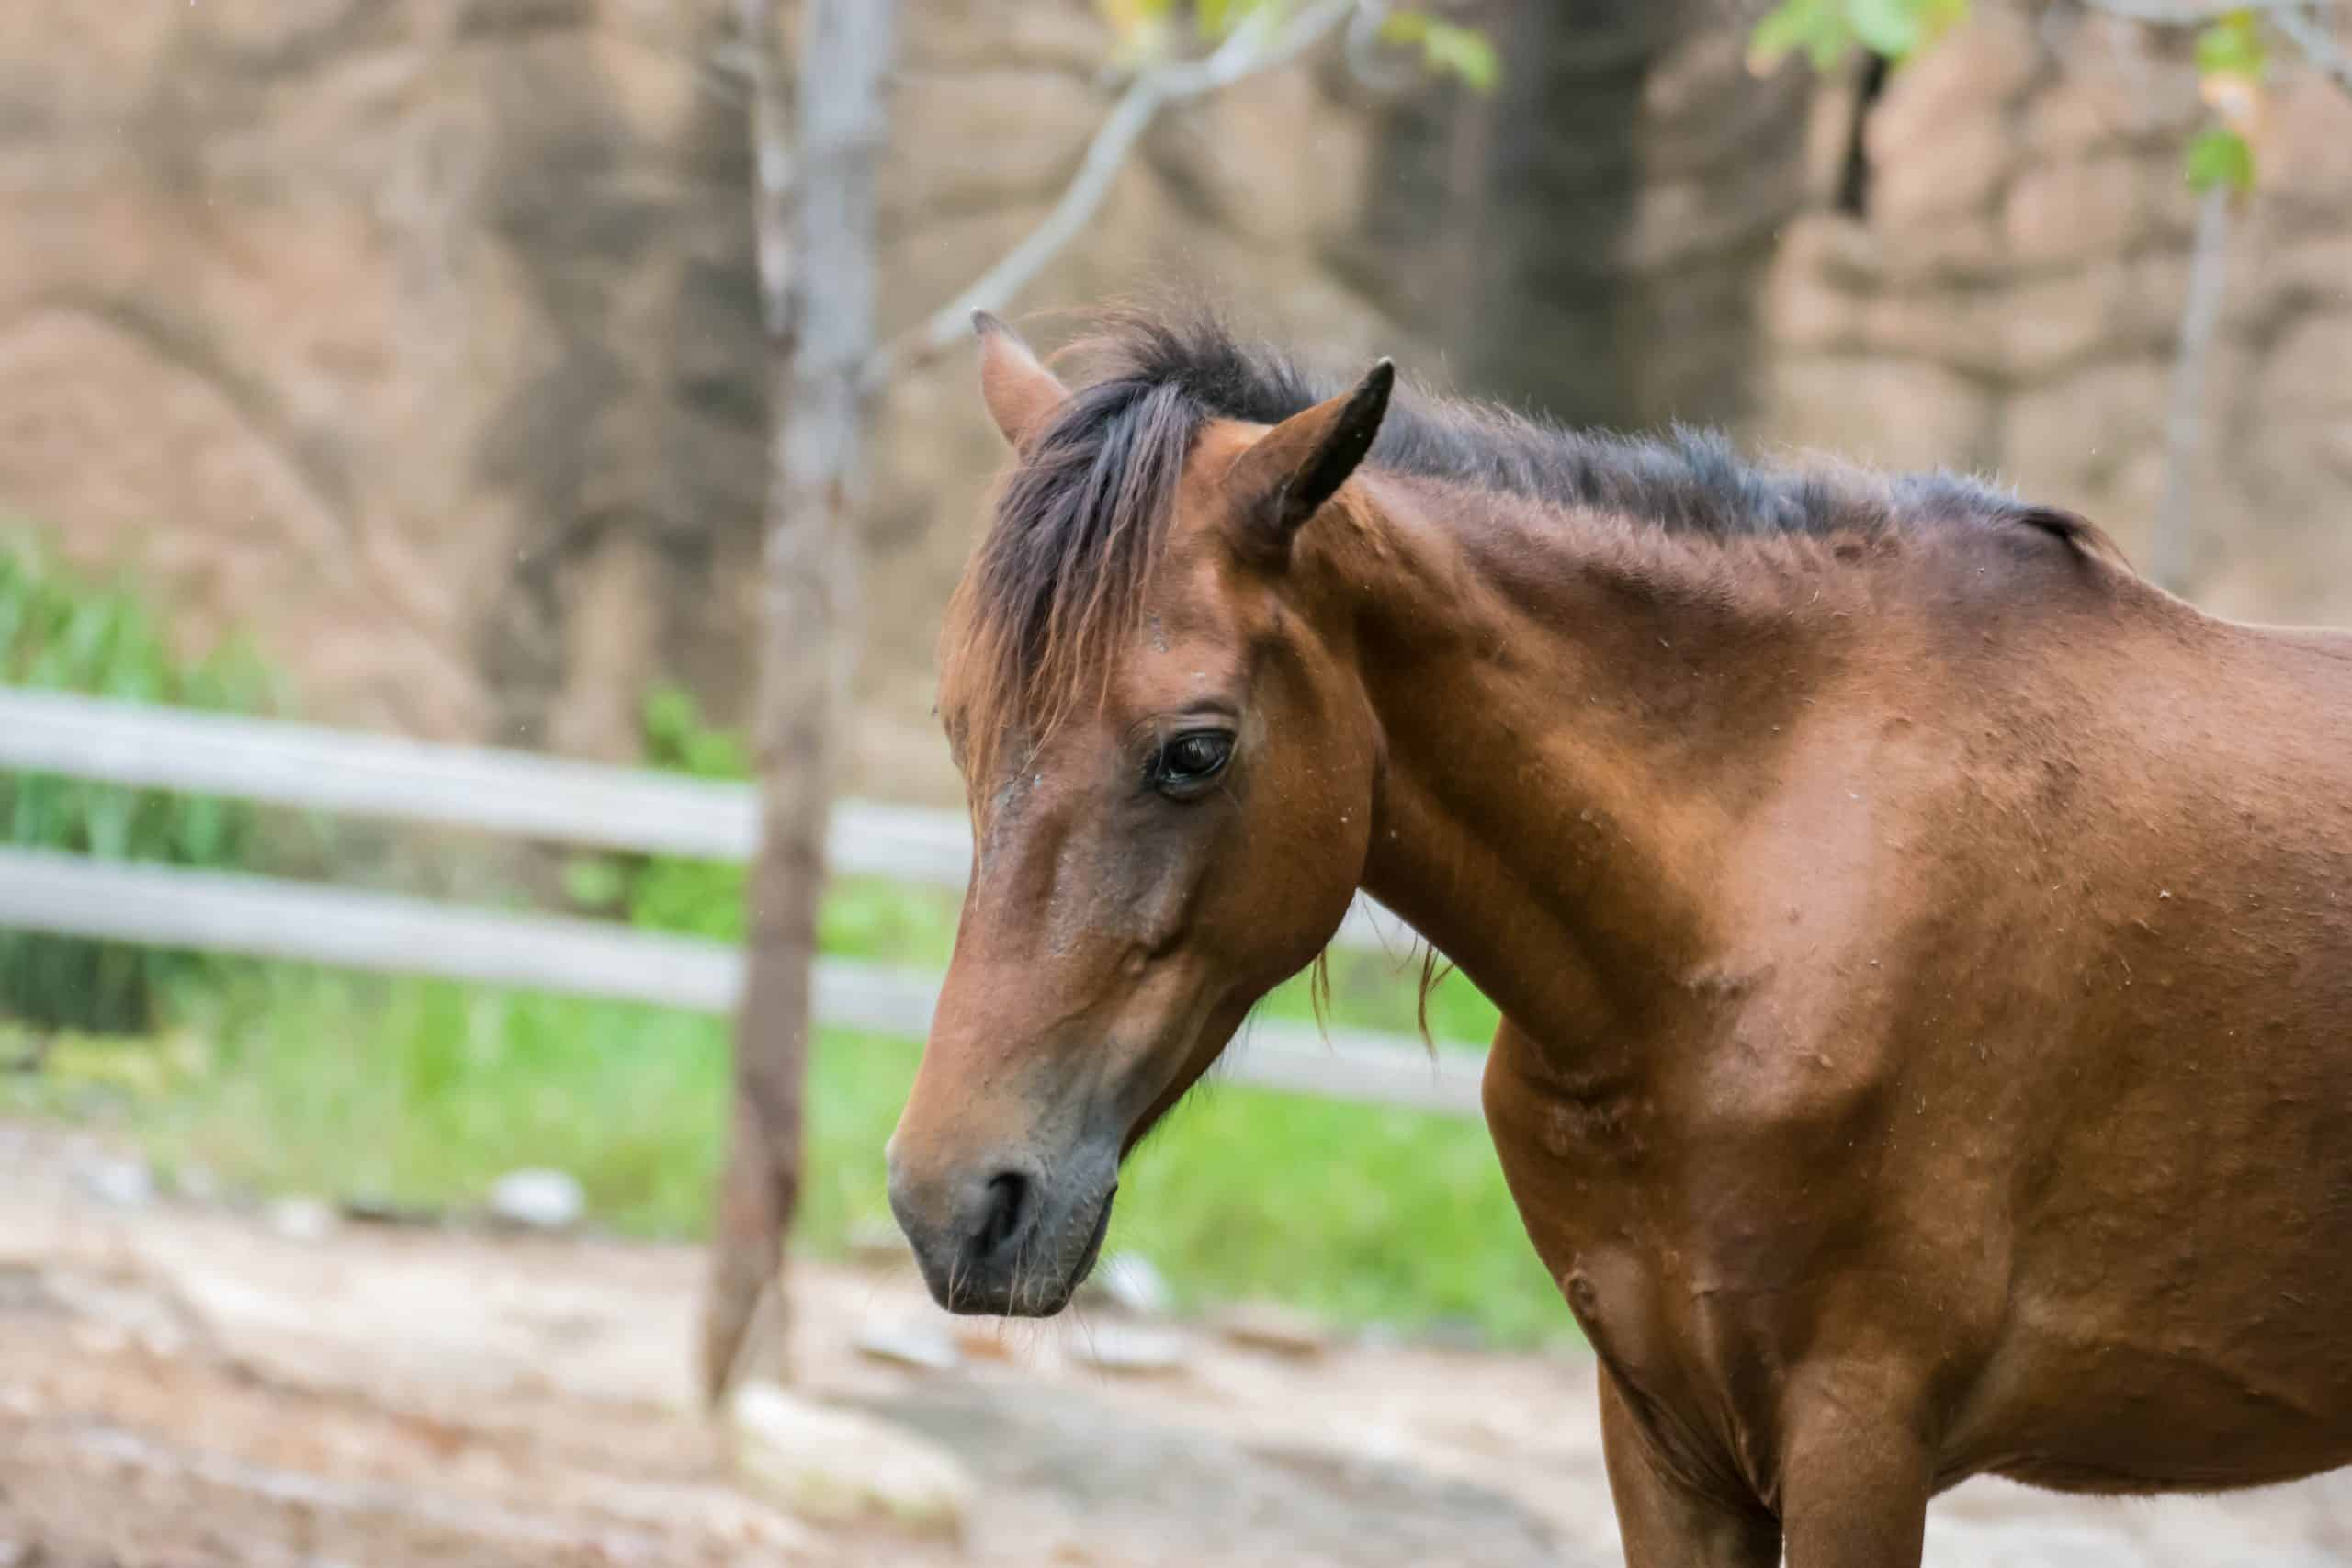 Horse horses sick sick Feathers and mane infested diseases, parasitic infections, hunger, neglect, infection in the legs and eyes, standing on wet and dirty surfaces.